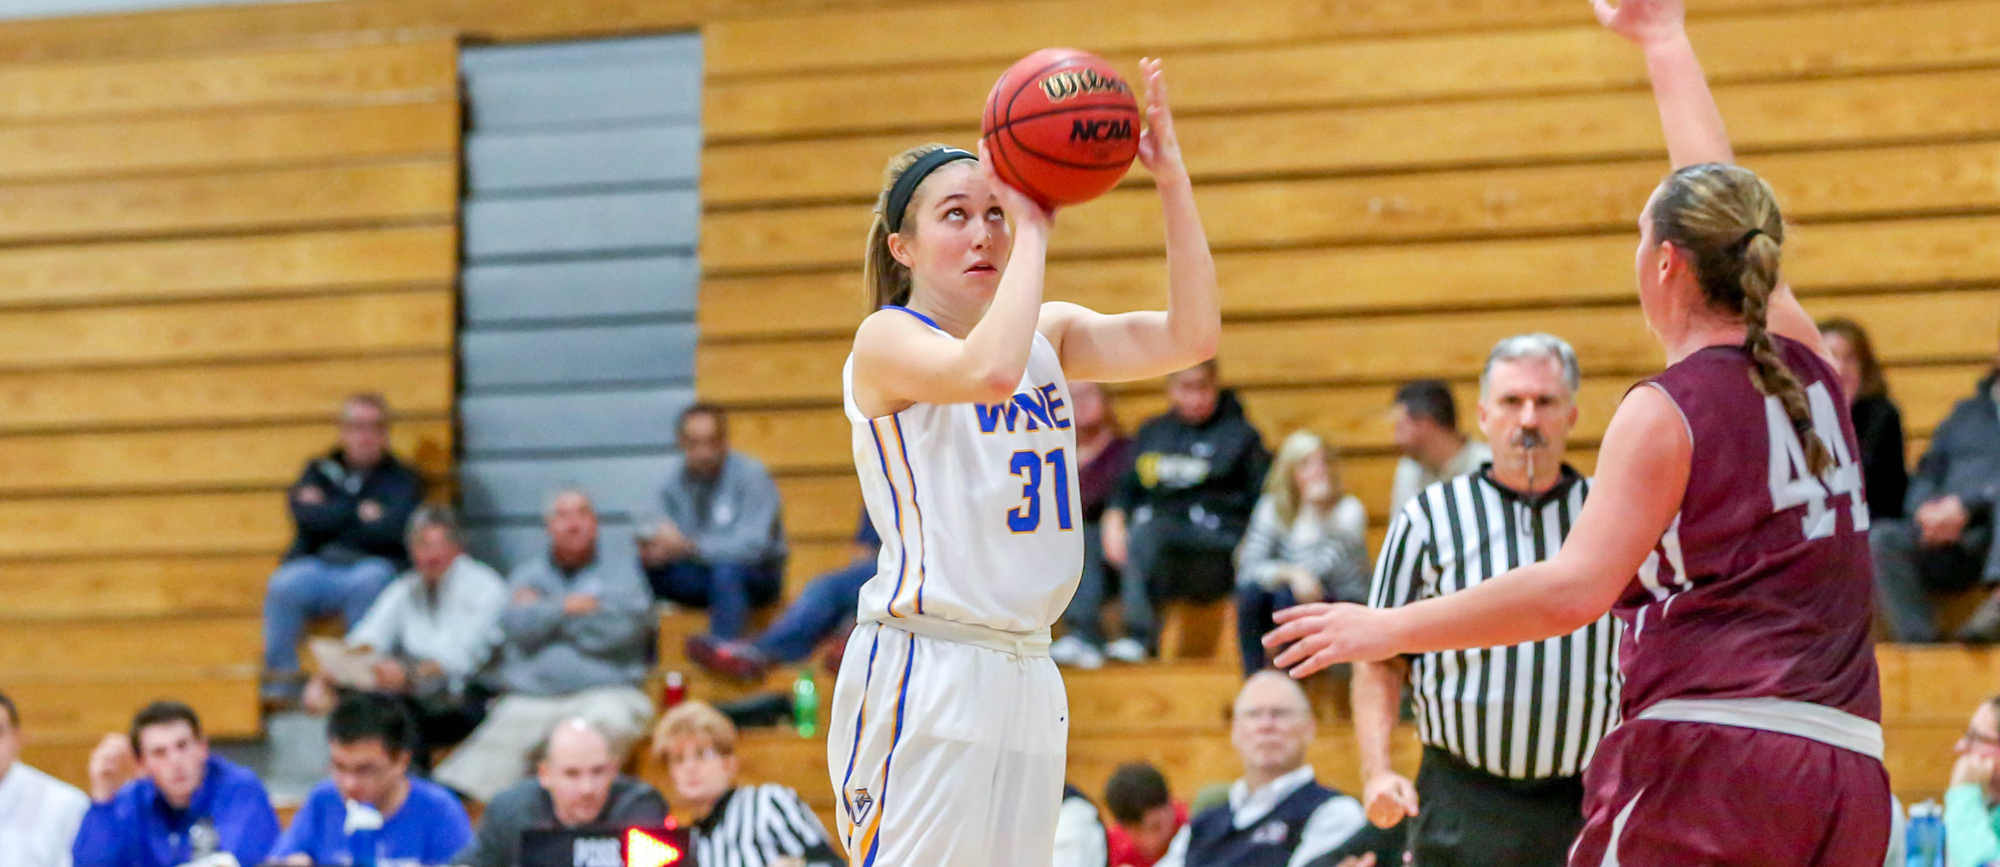 Sophomore Meghan Orbann scored a team-high 15 points, five of which came during a 10-0 run late in the fourth quarter of Western New England's 53-47 win over MCLA on Saturday.